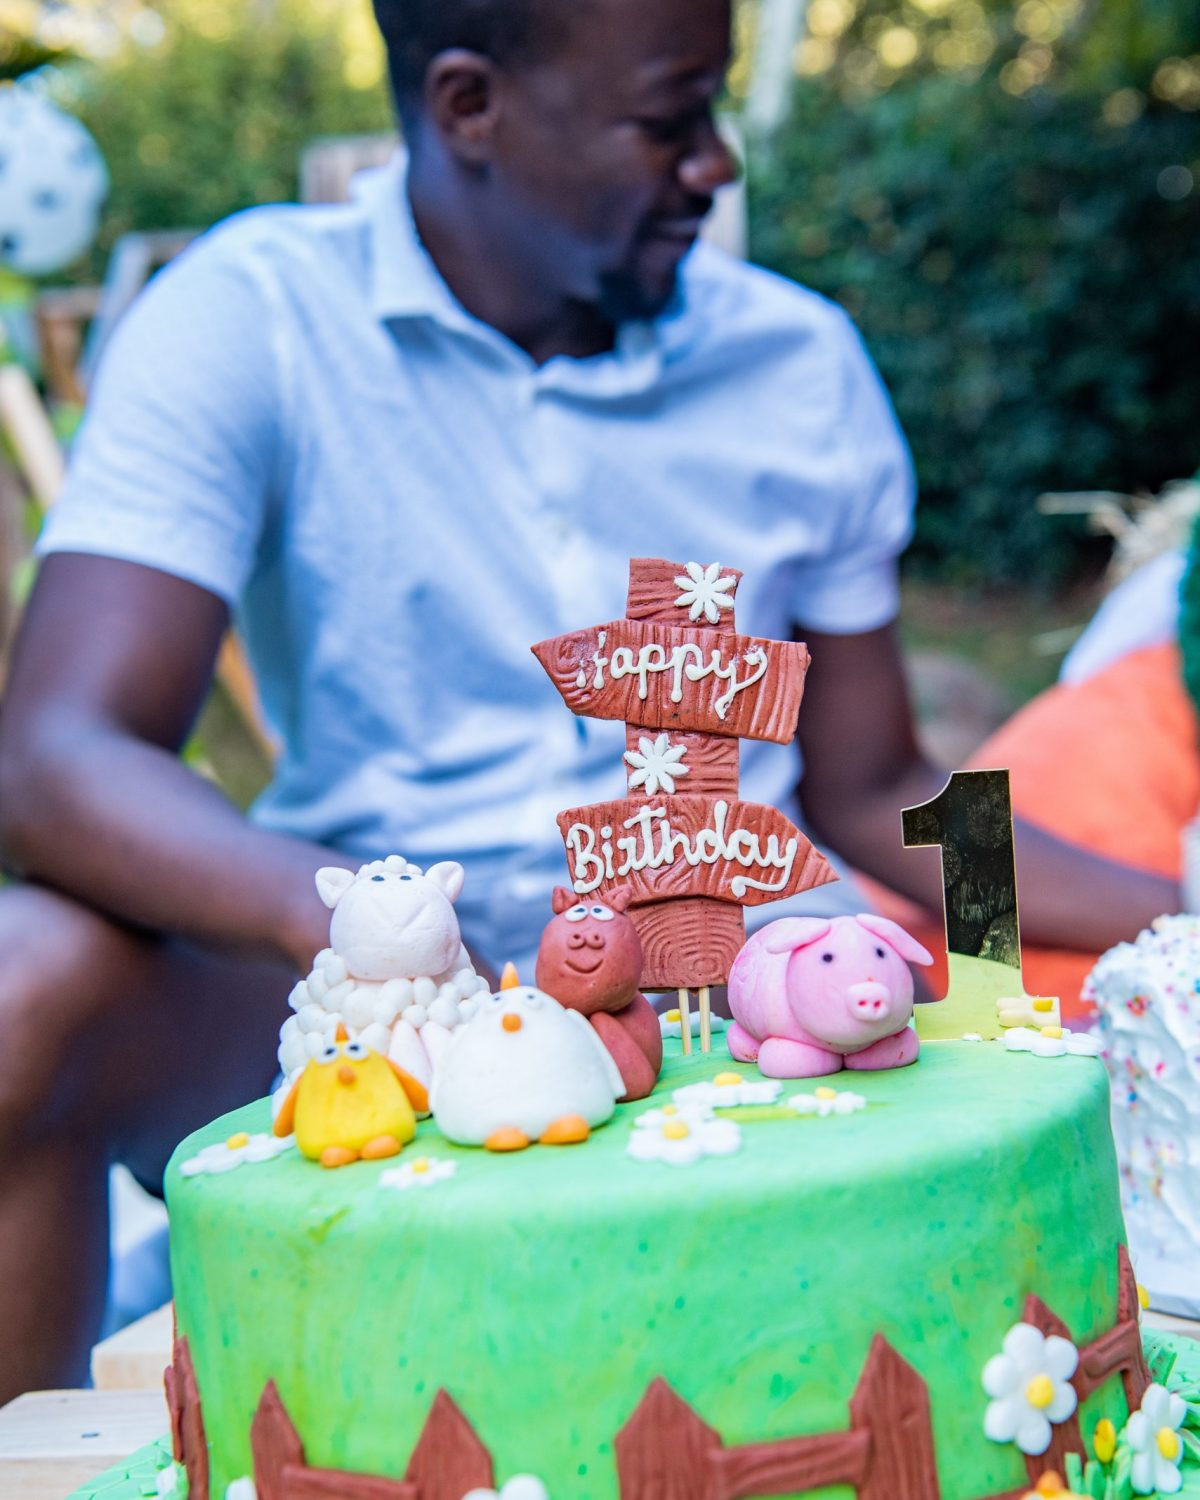 Farm themed 1st birthday cake with Jonathan Kola in background